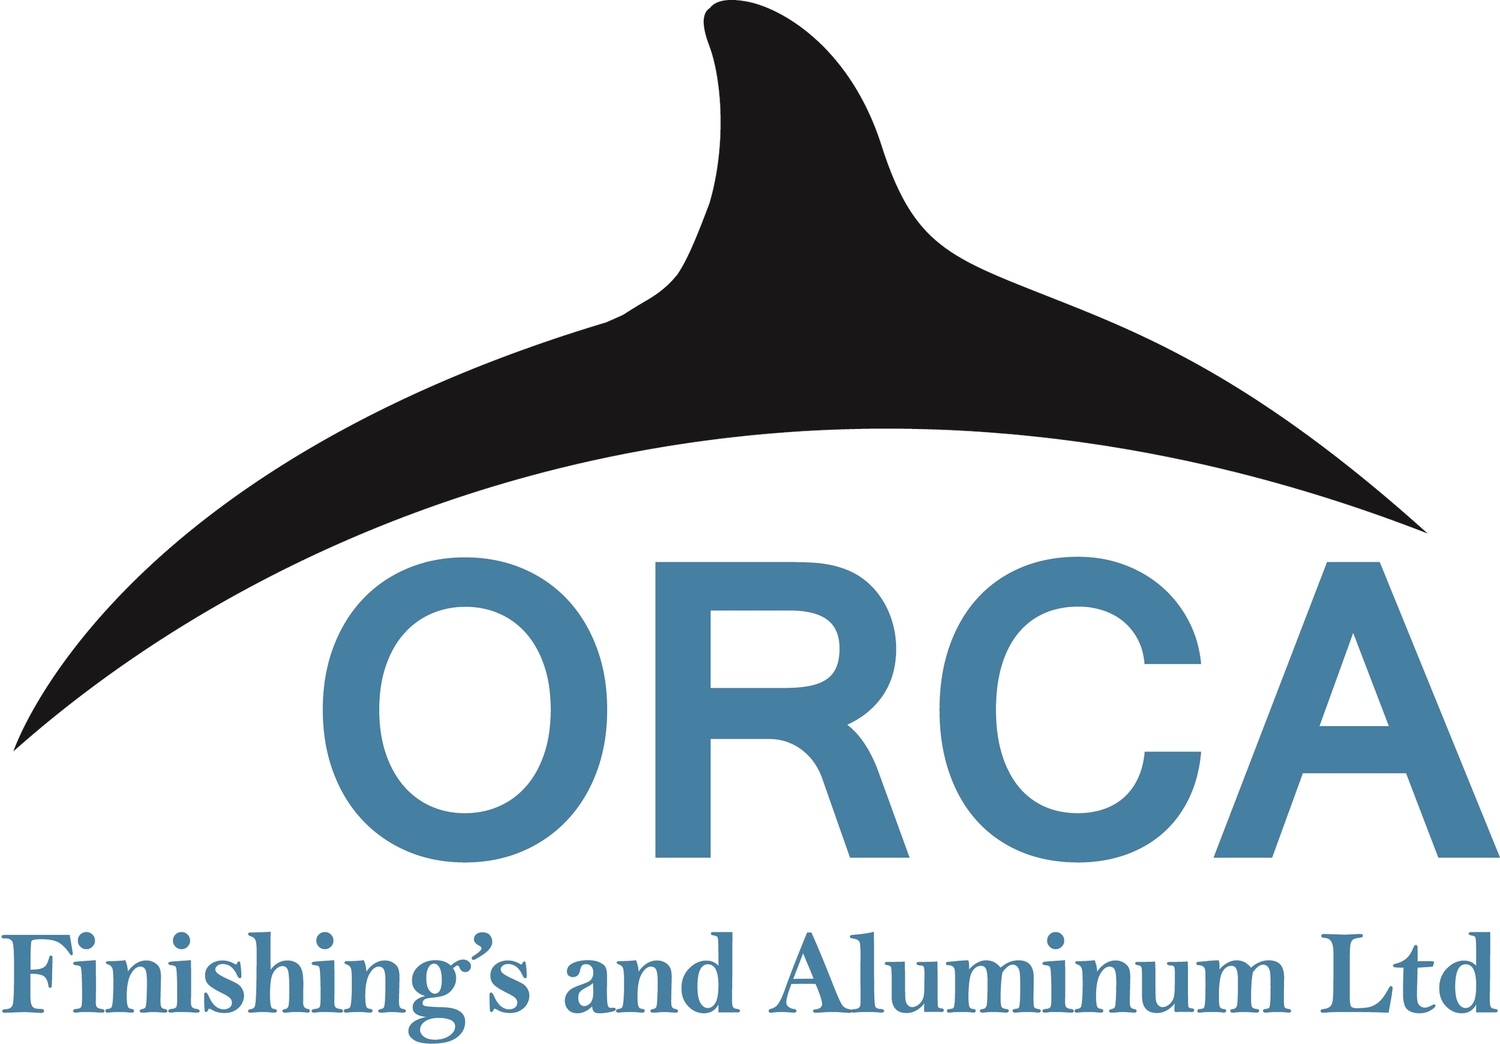 Orca Finishing's and Aluminum Ltd